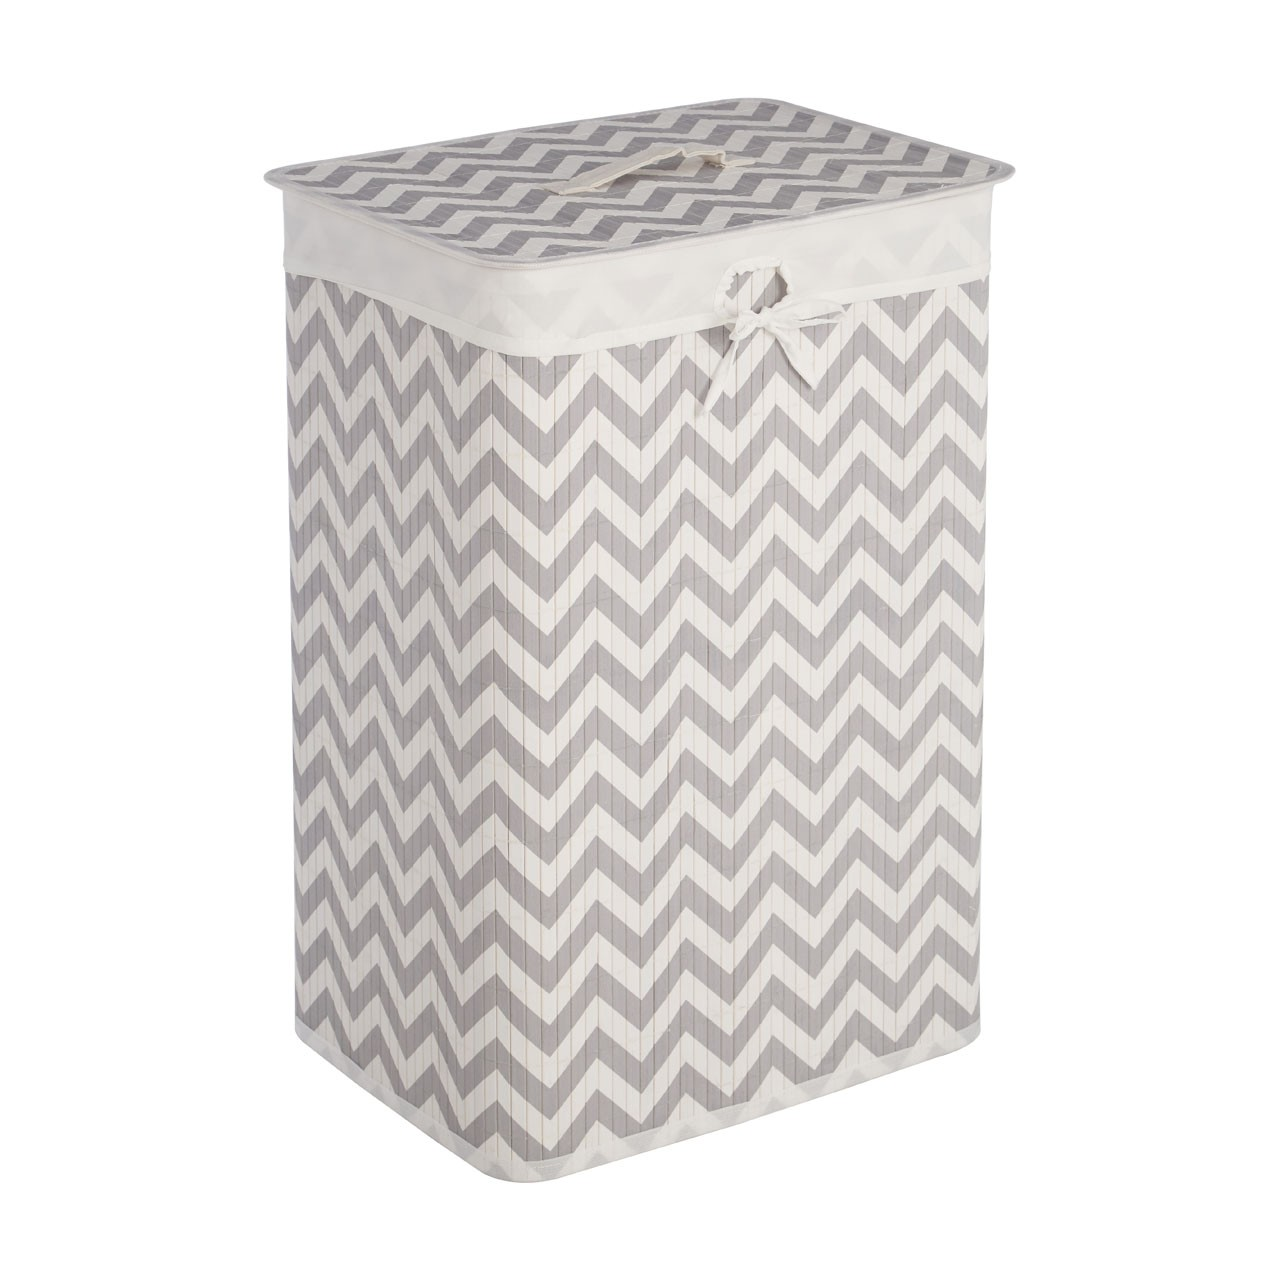 Prime Furnishing Kankyo Laundry Hamper - White /Grey Chevron